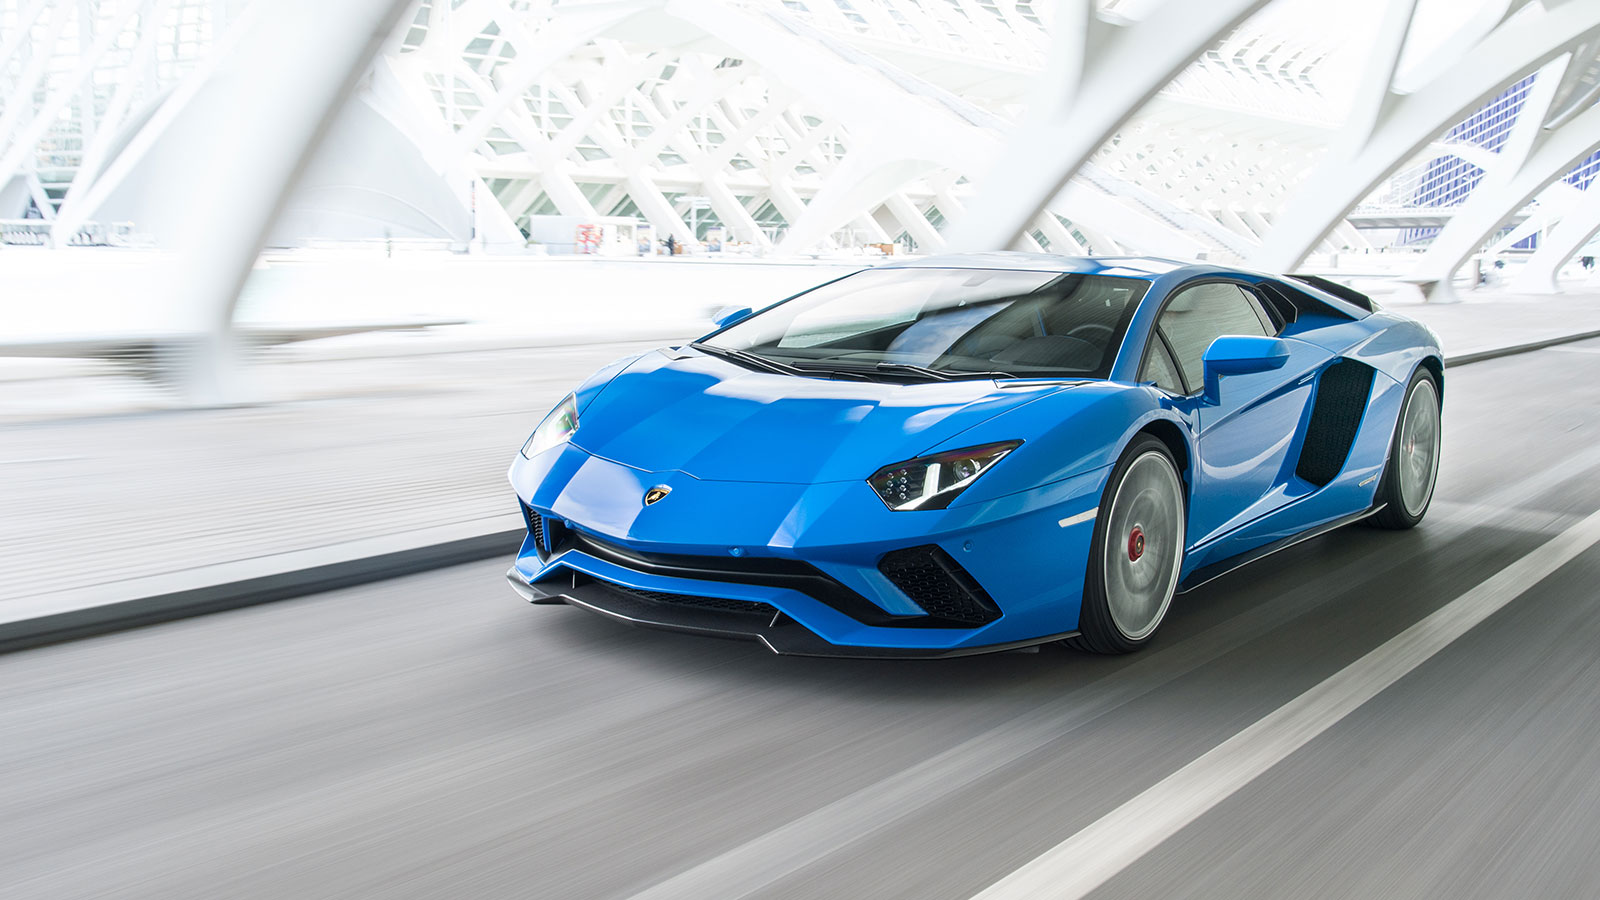 Lamborghini Aventador S Coupe - The Icon Reborn image 24